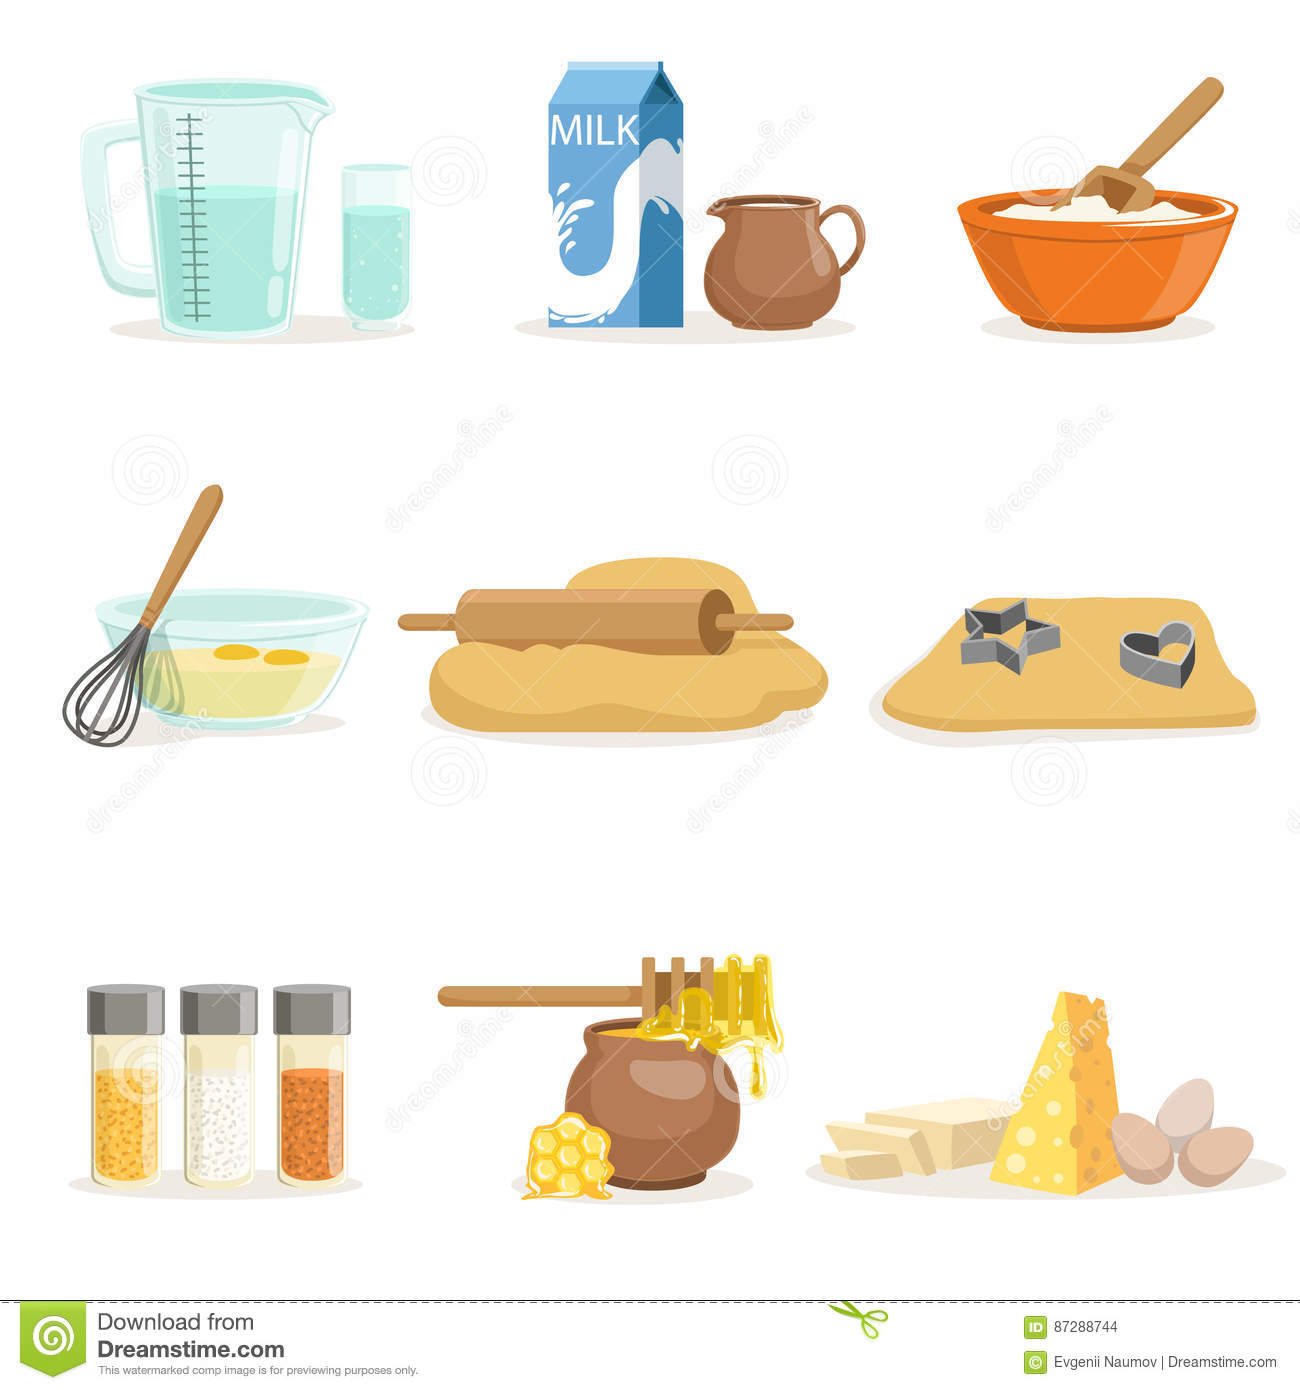 Baking Powder For Commercial Kitchen